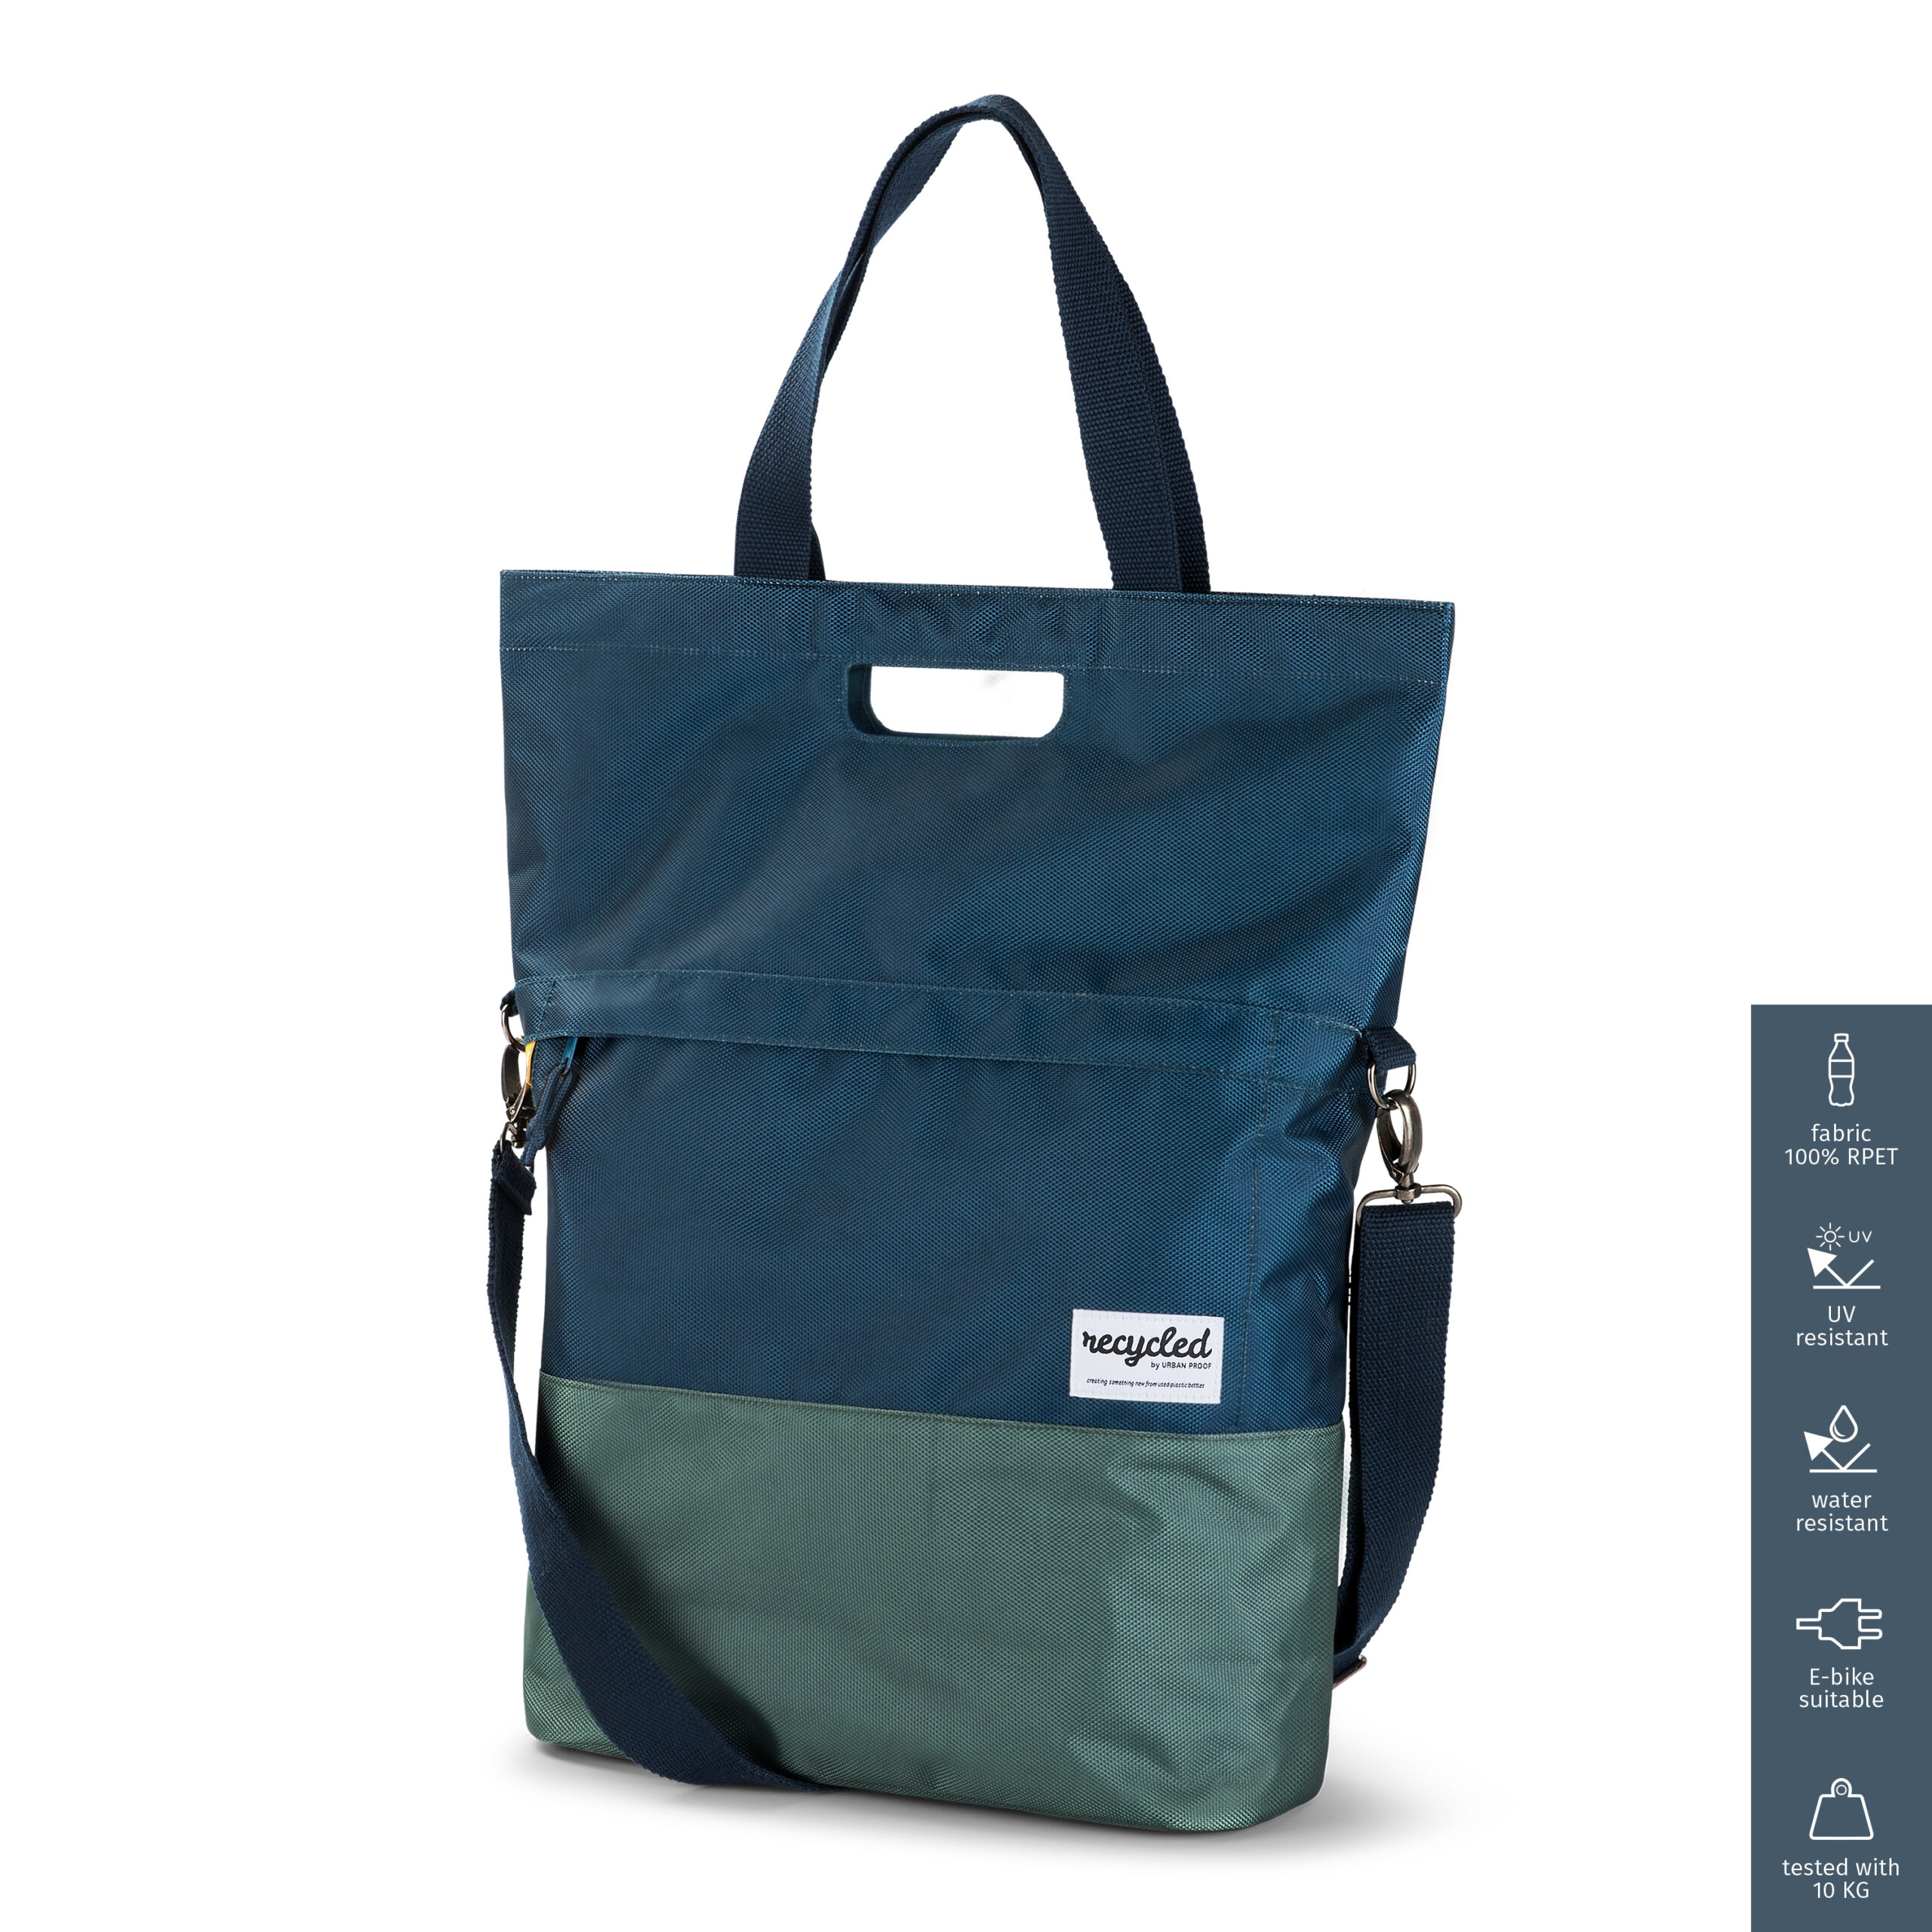 Product image Shopper Bicycle Bag 20L Recycled – Blue Green